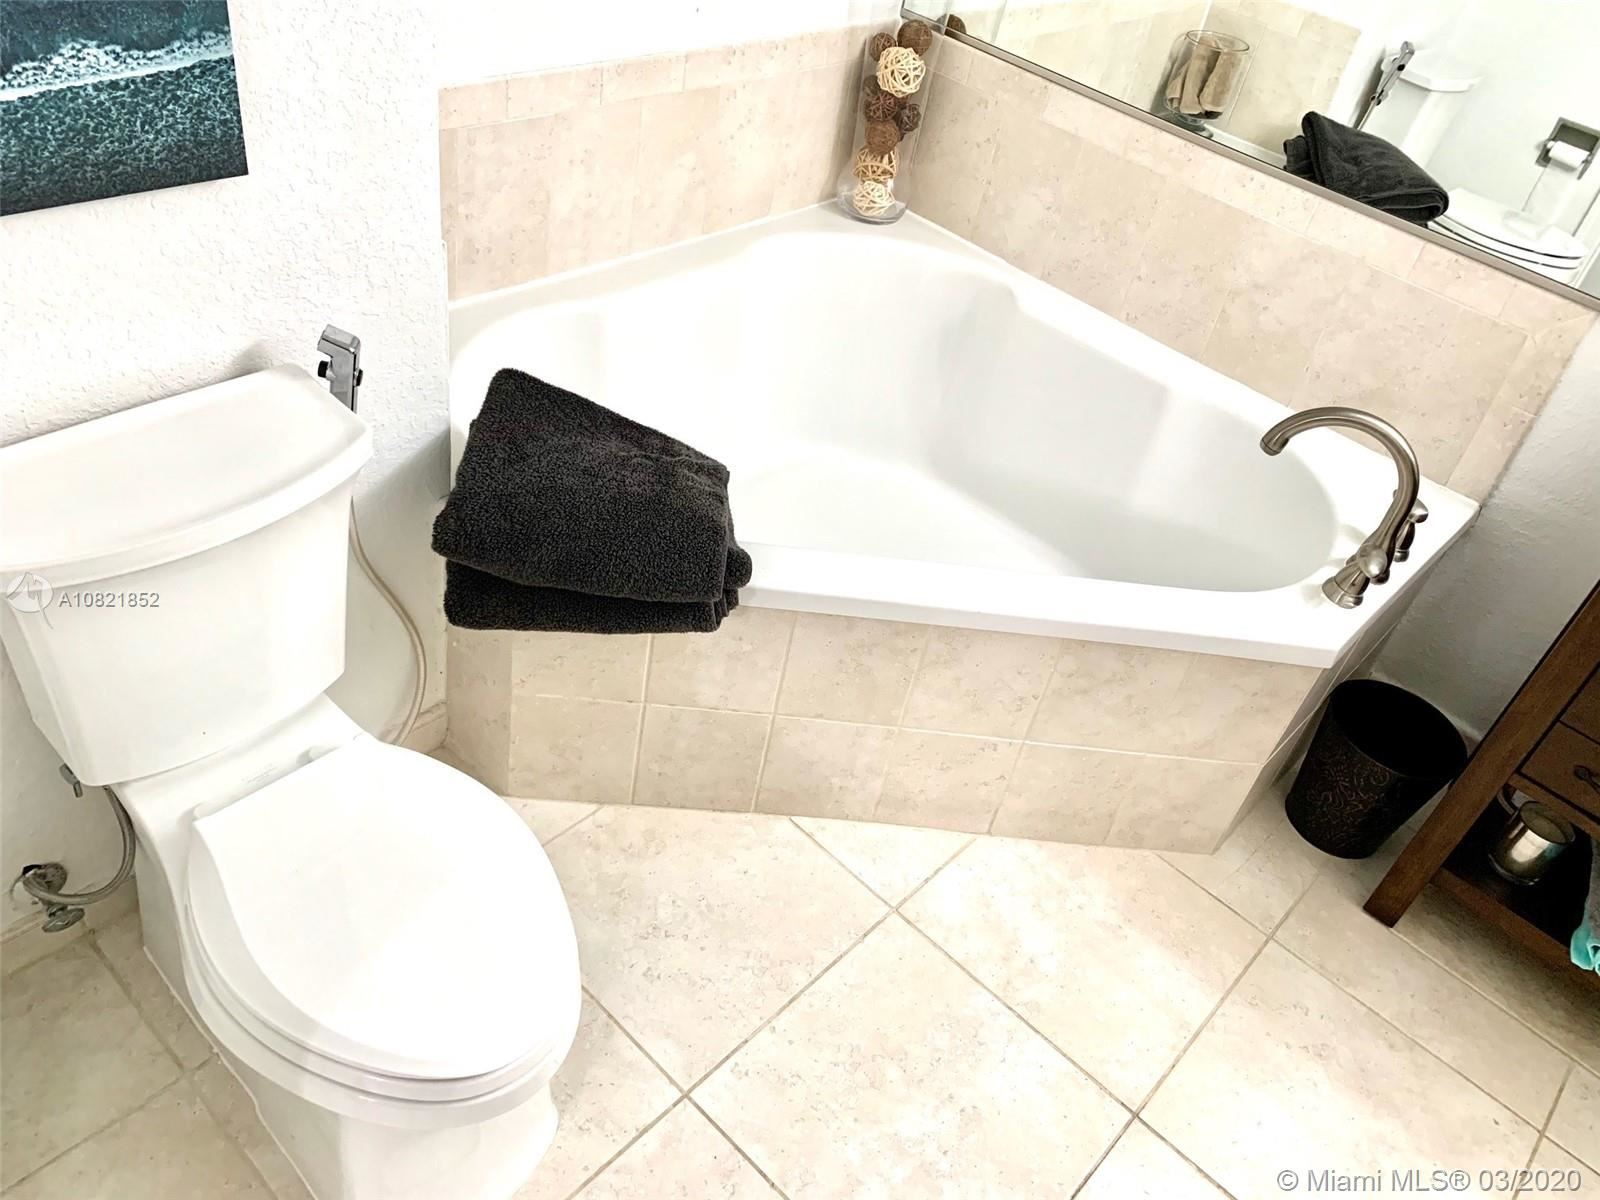 Photo 16 of Listing MLS a10821852 in 1830 Radius Dr #305 Hollywood FL 33020